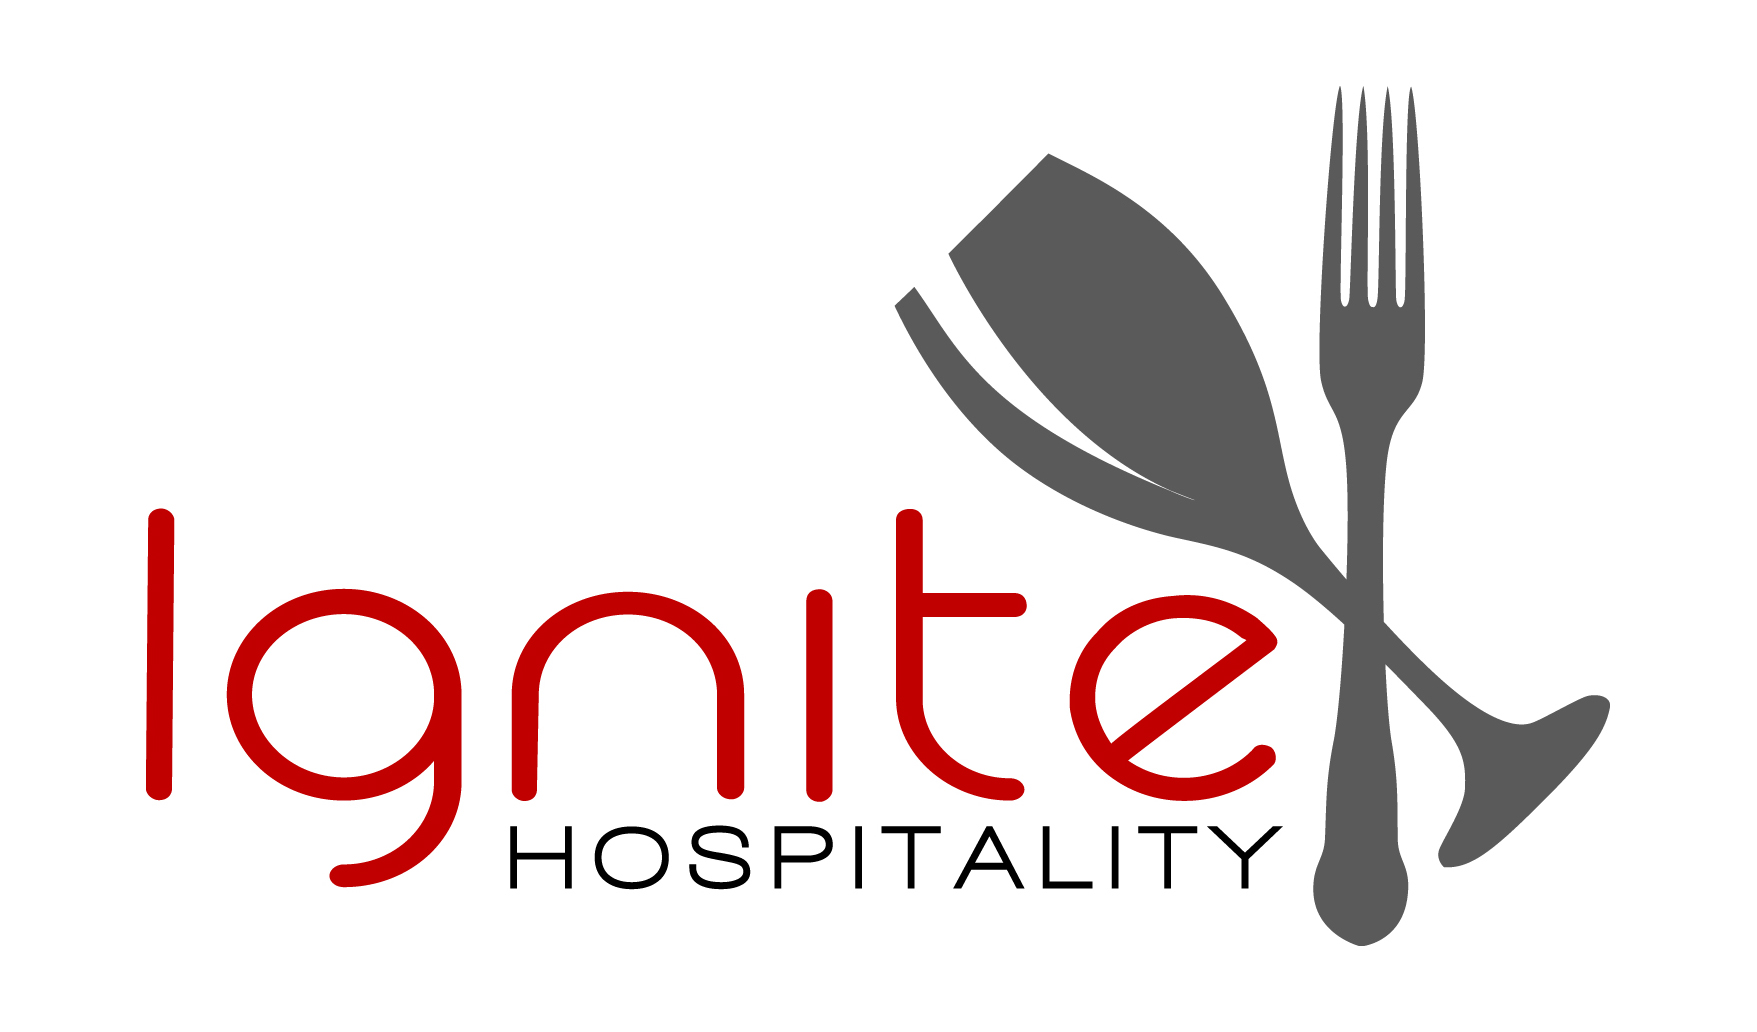 Hospitality Logo Design for Ignite Hospitality by Serkan.